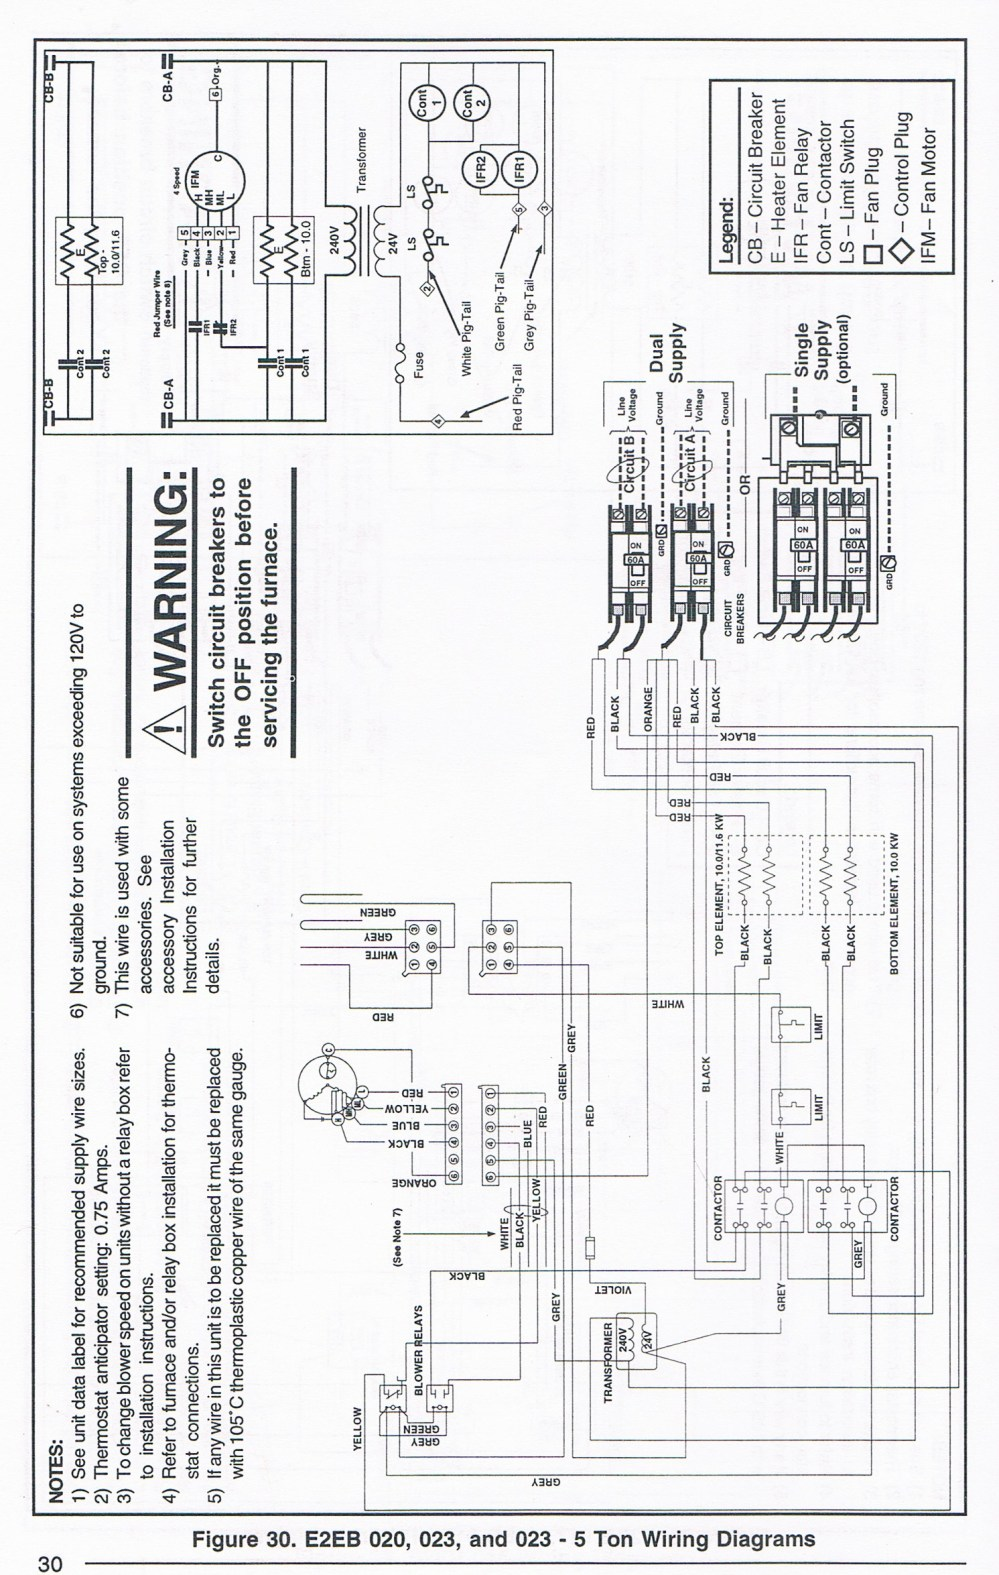 medium resolution of wiring diagram for nordyne electric furnace wiring diagram page wiring diagram for furnace moreover intertherm electric furnace wiring